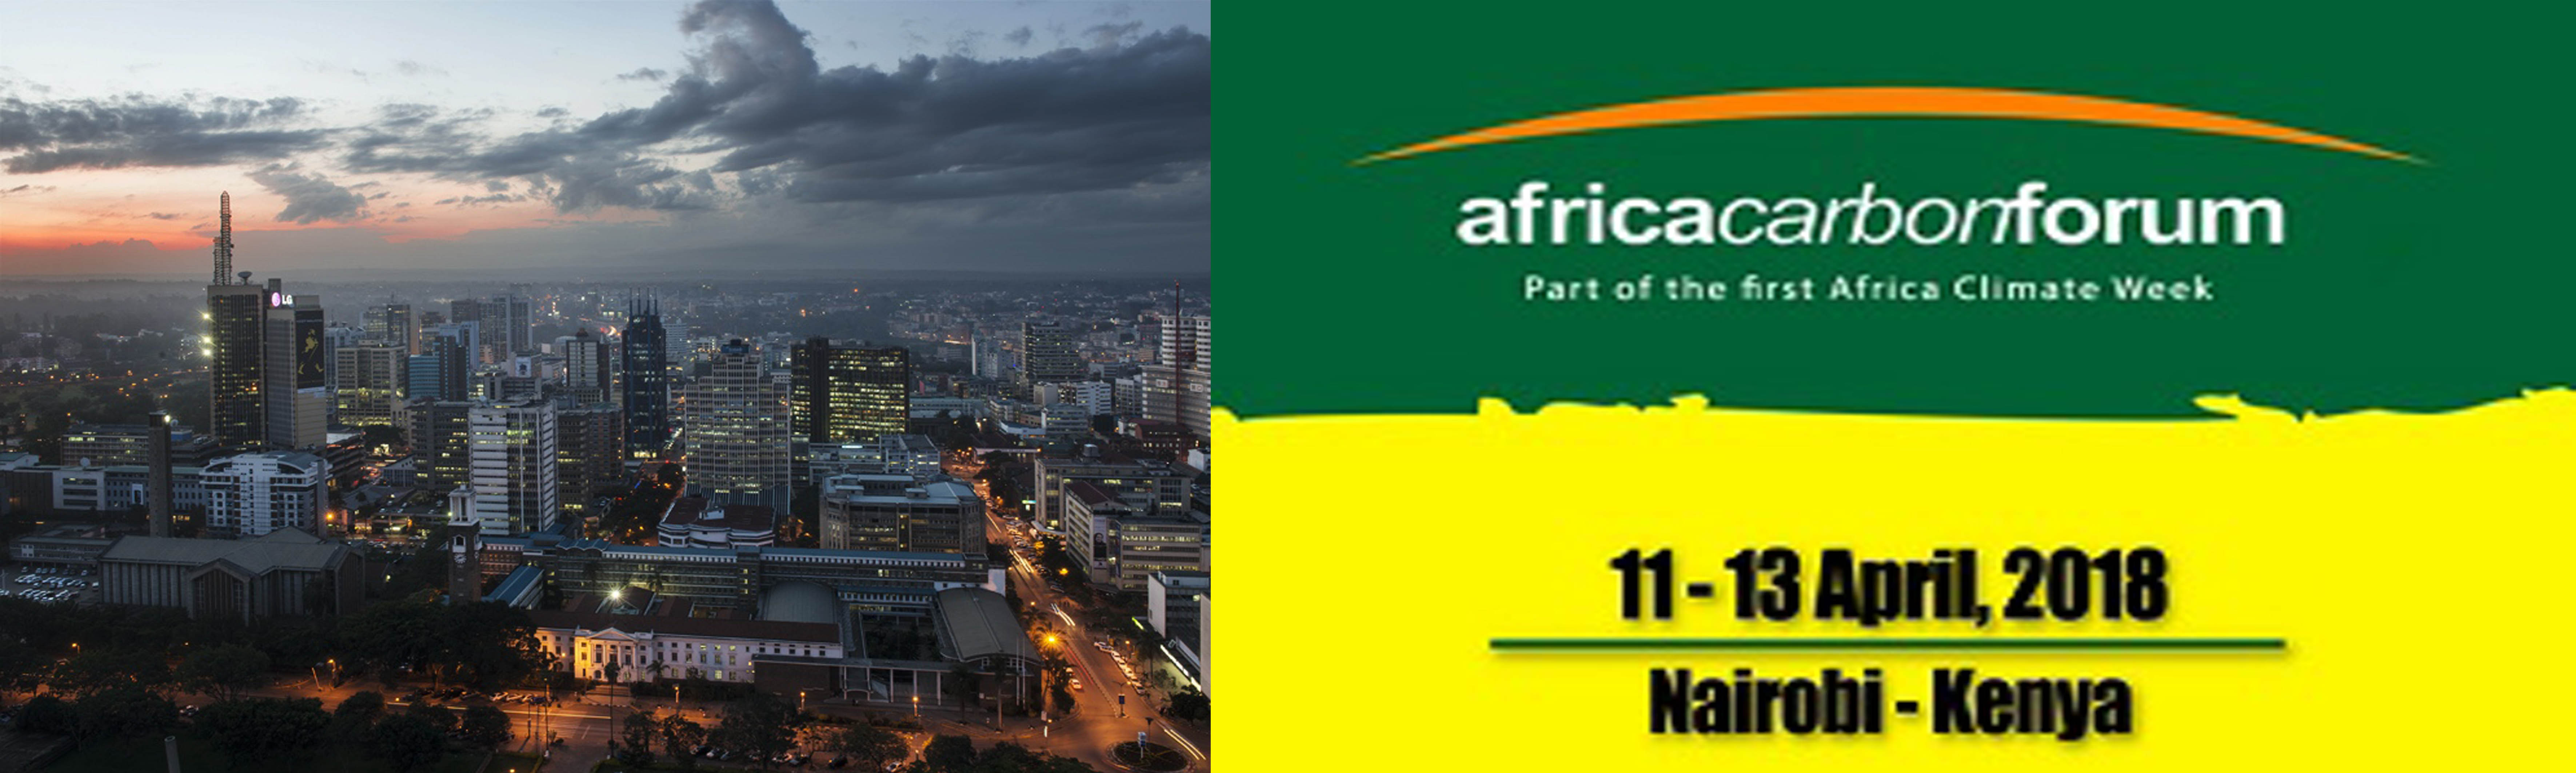 Kenya to host 10th Africa Carbon Forum